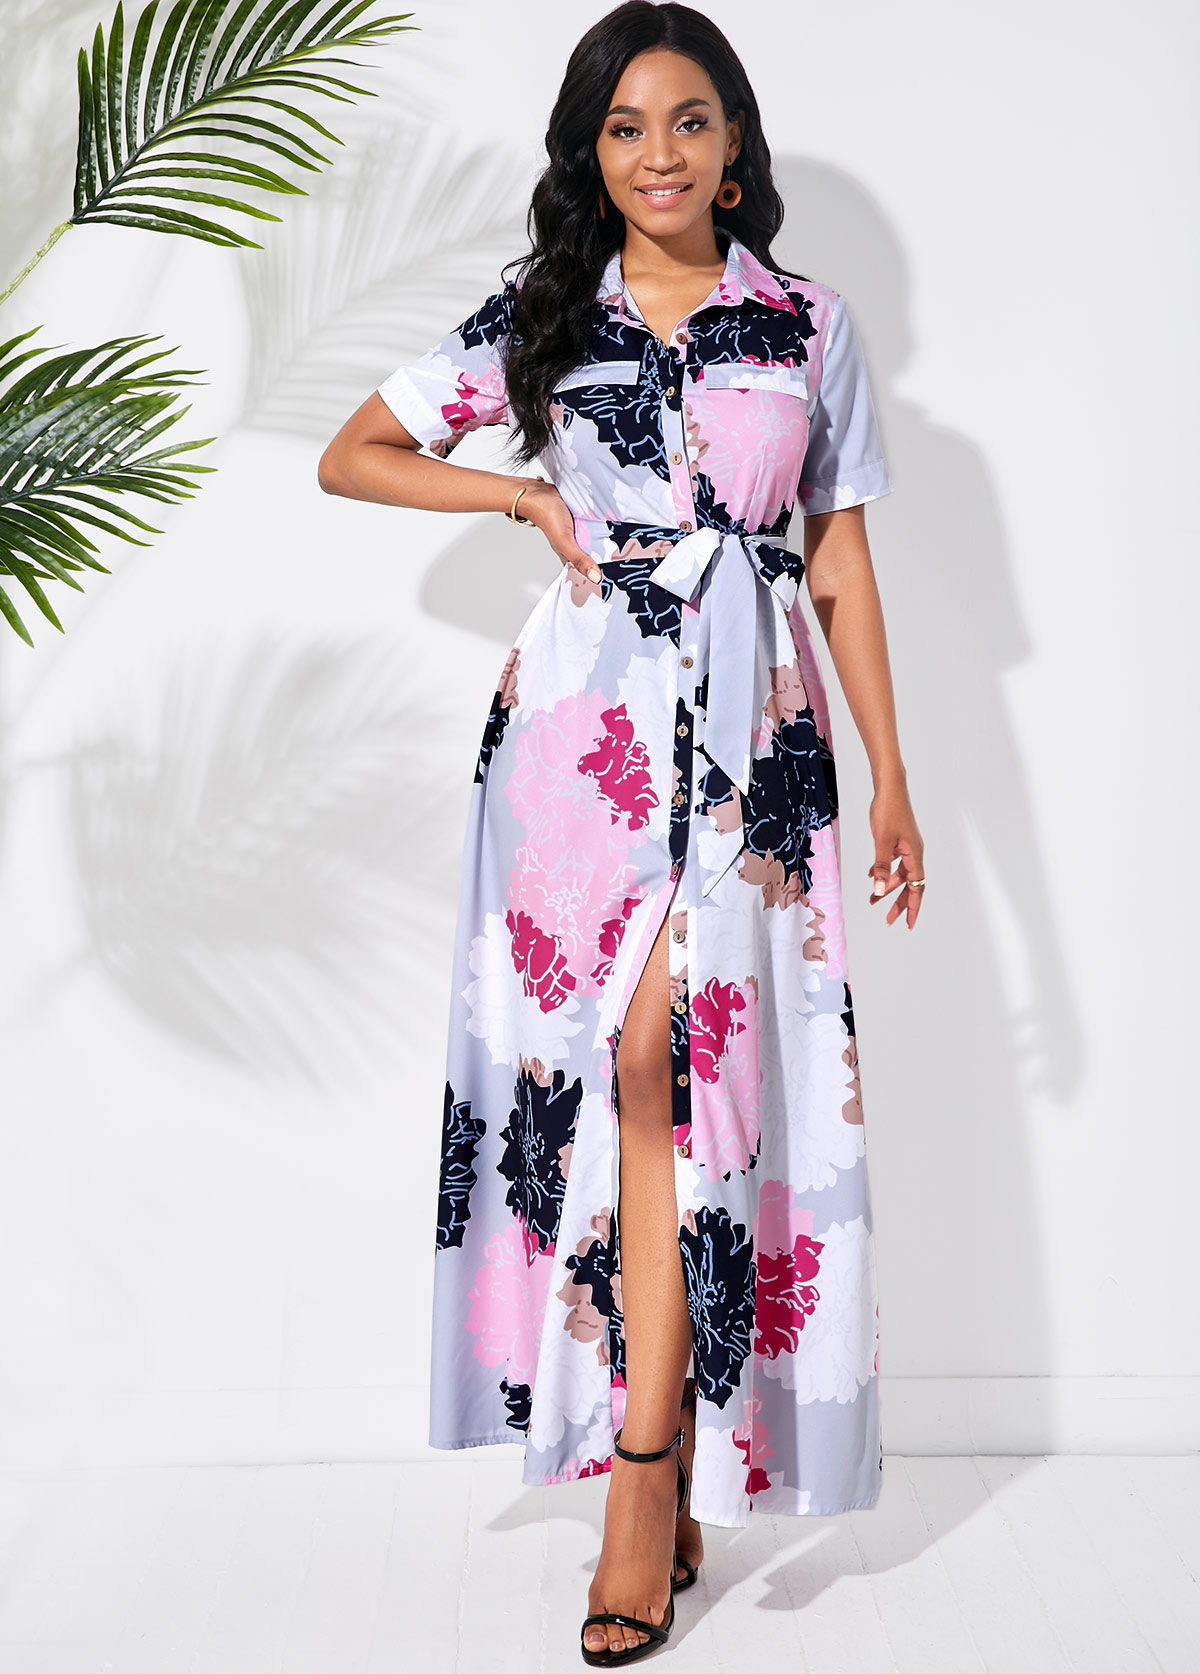 ROTITA Bowknot Sash Multi Color Blossom Print Dress